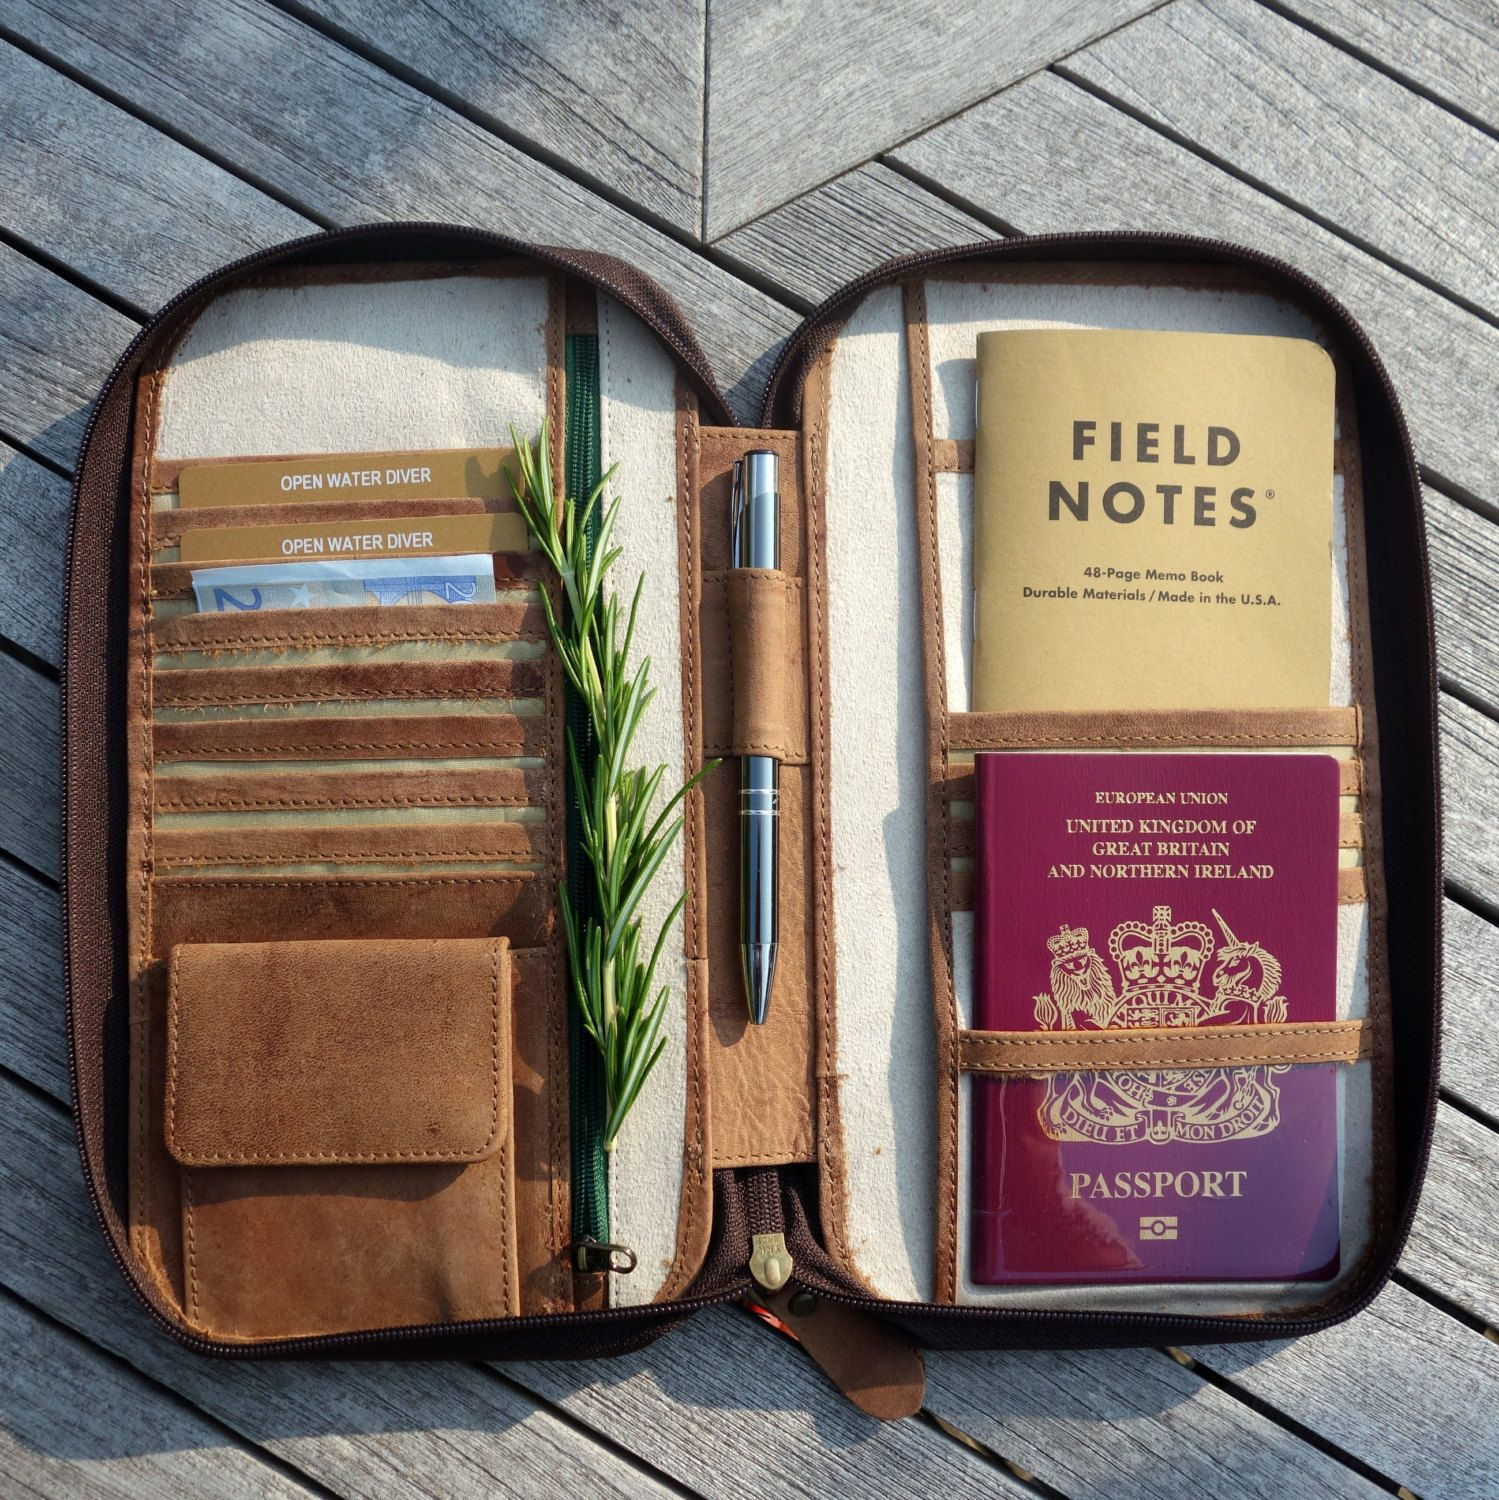 Passport Cover Passport Holder Old Newspapers In The World Stylish Pu Leather Travel Accessories Passport Cases For Men For Women Men